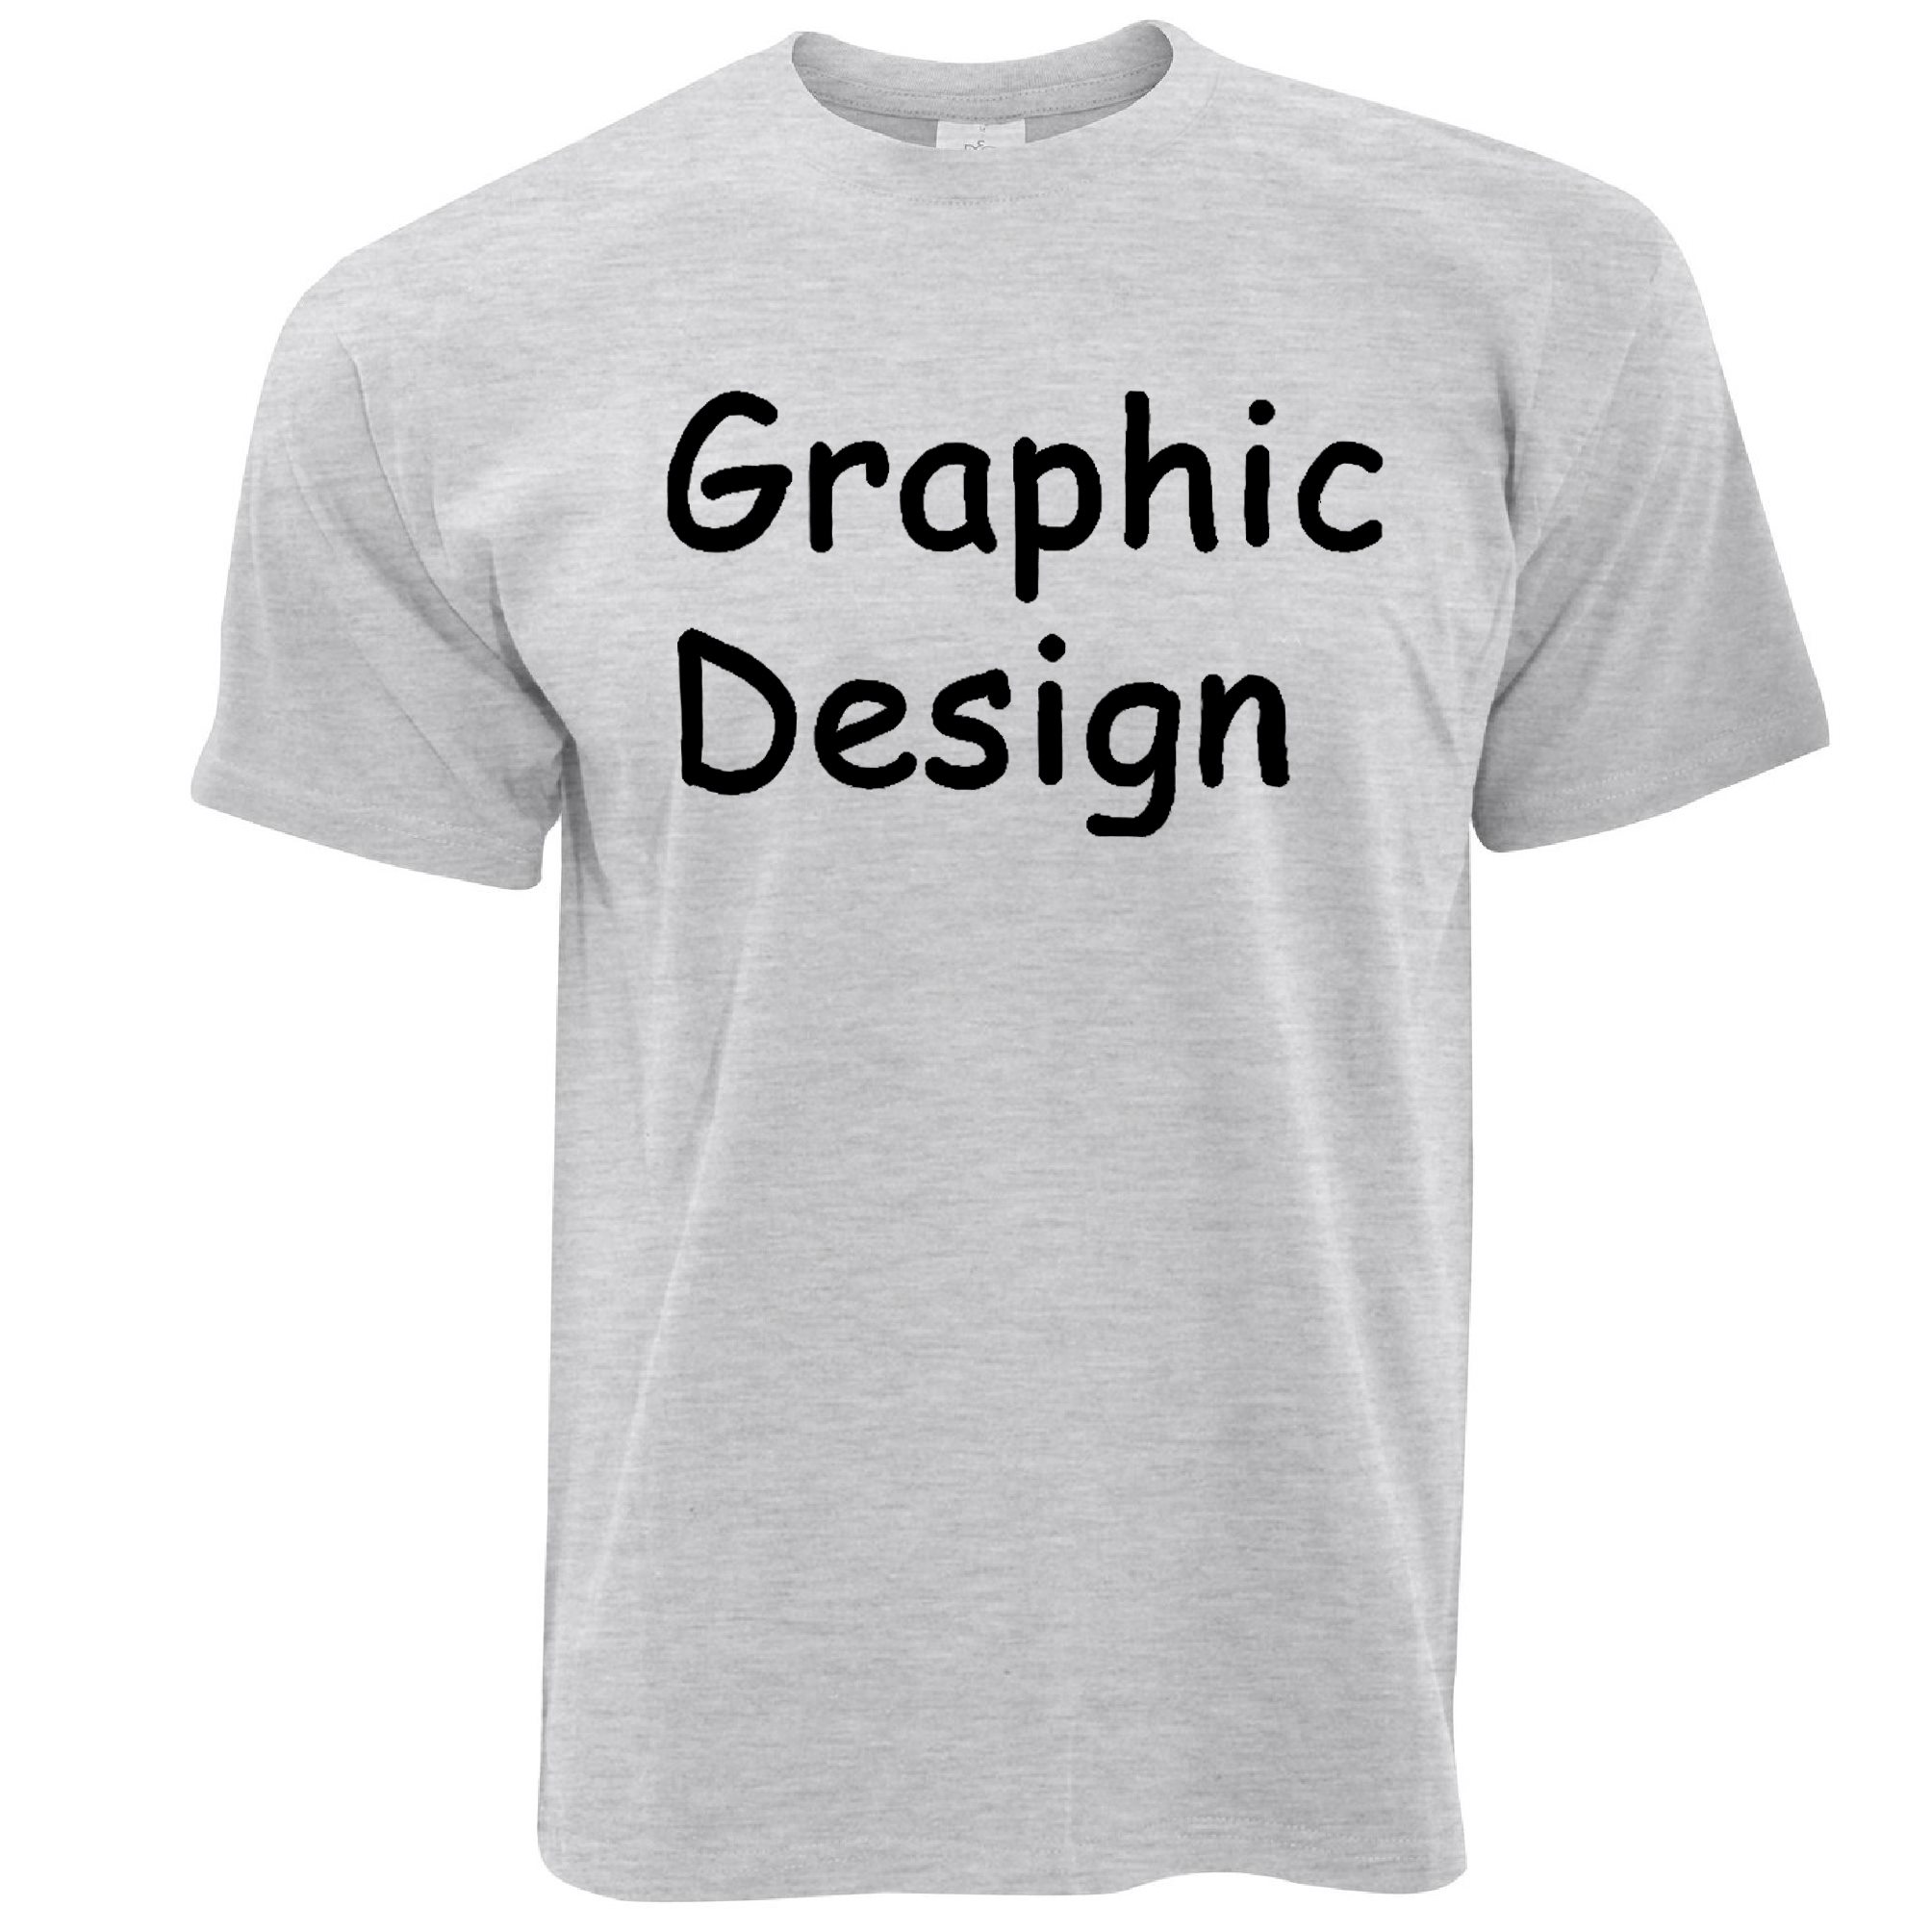 Graphic design comic sana funny type font bad paint art for Graphic design t shirts uk